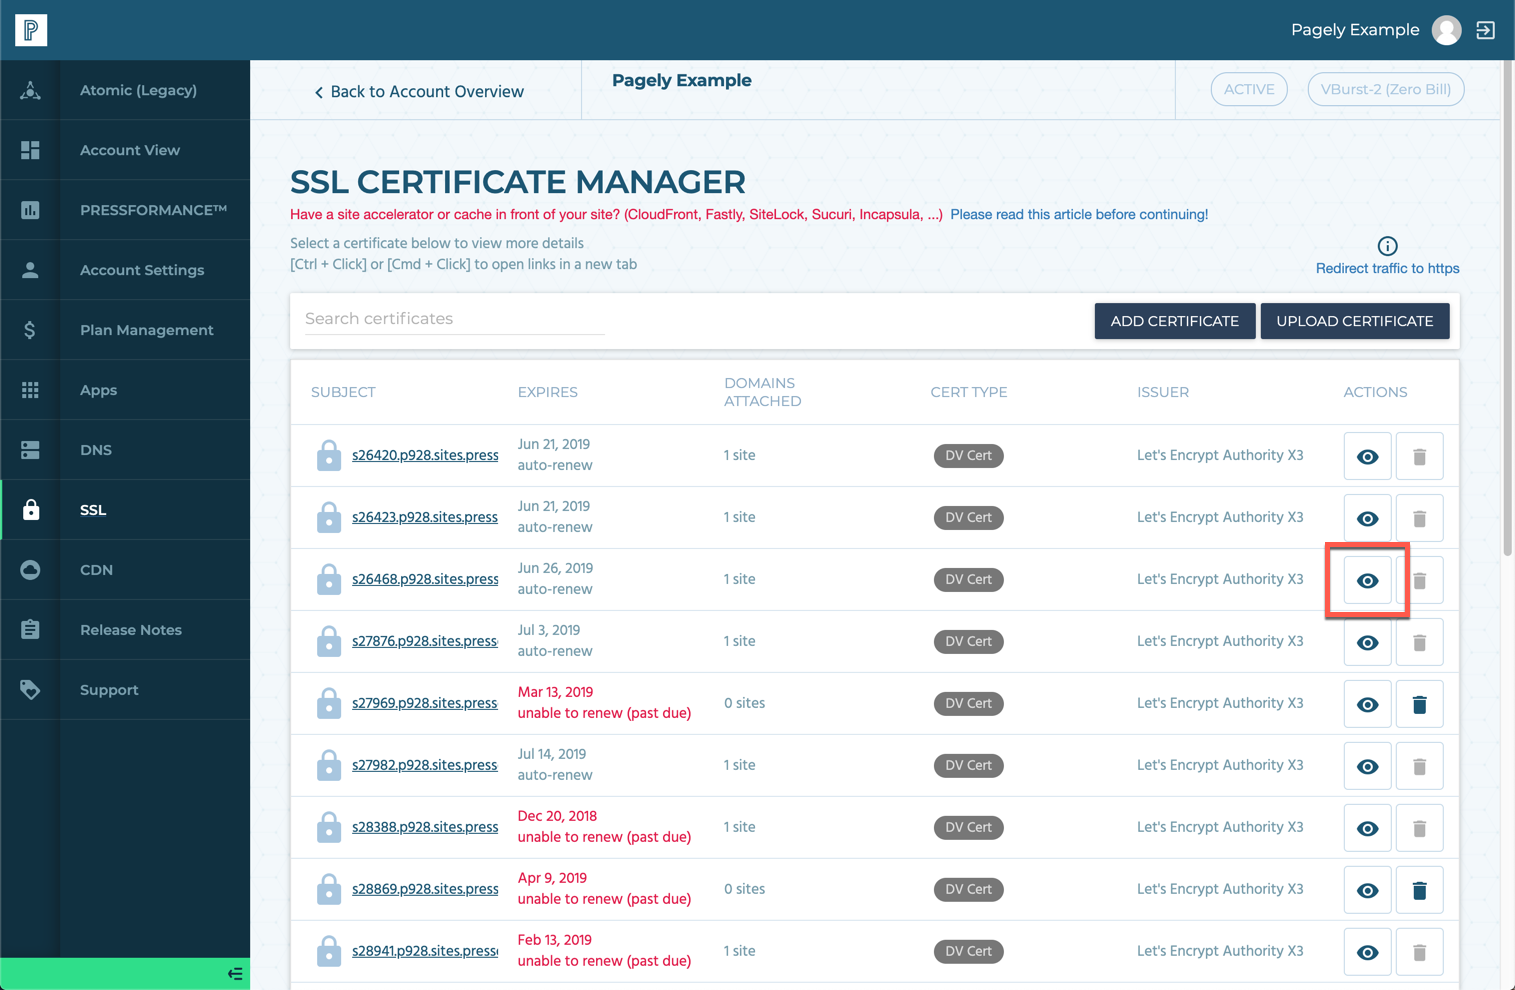 ssl-manager-view-details.png